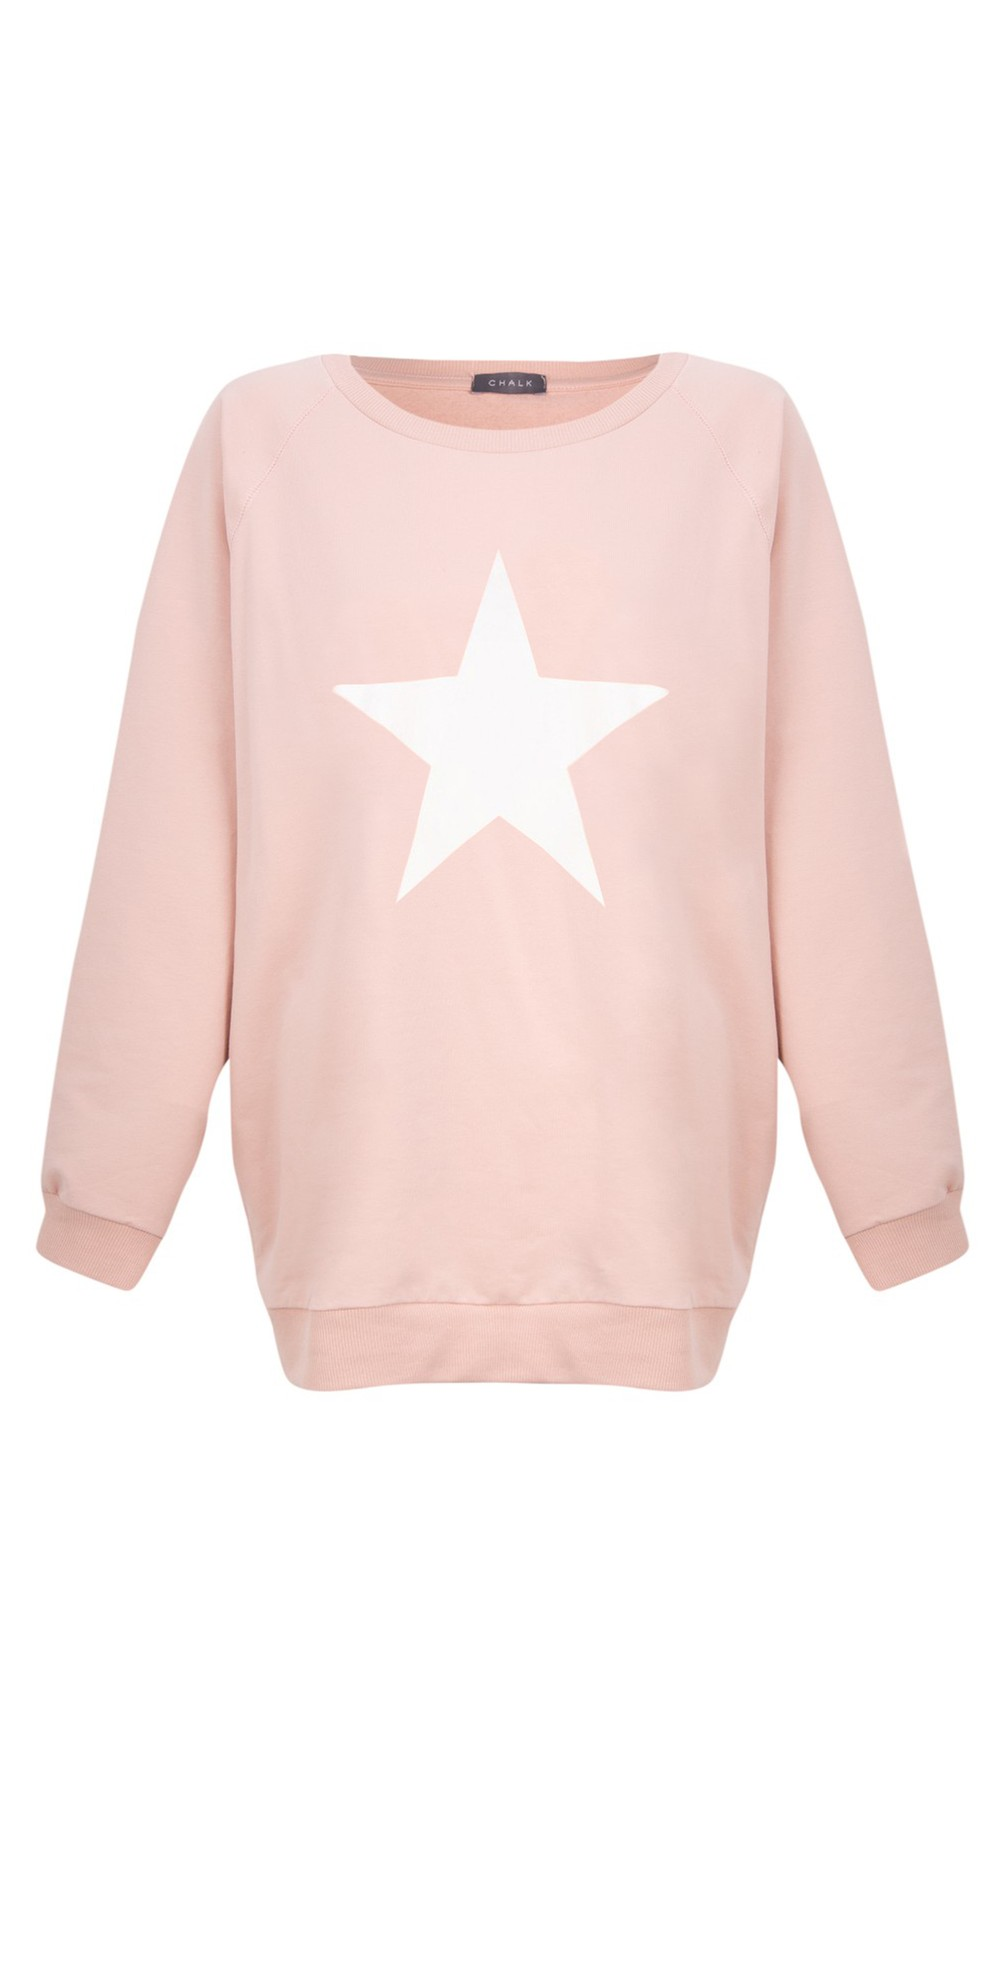 Nancy Star Oversized Comfy Sweatshirt main image